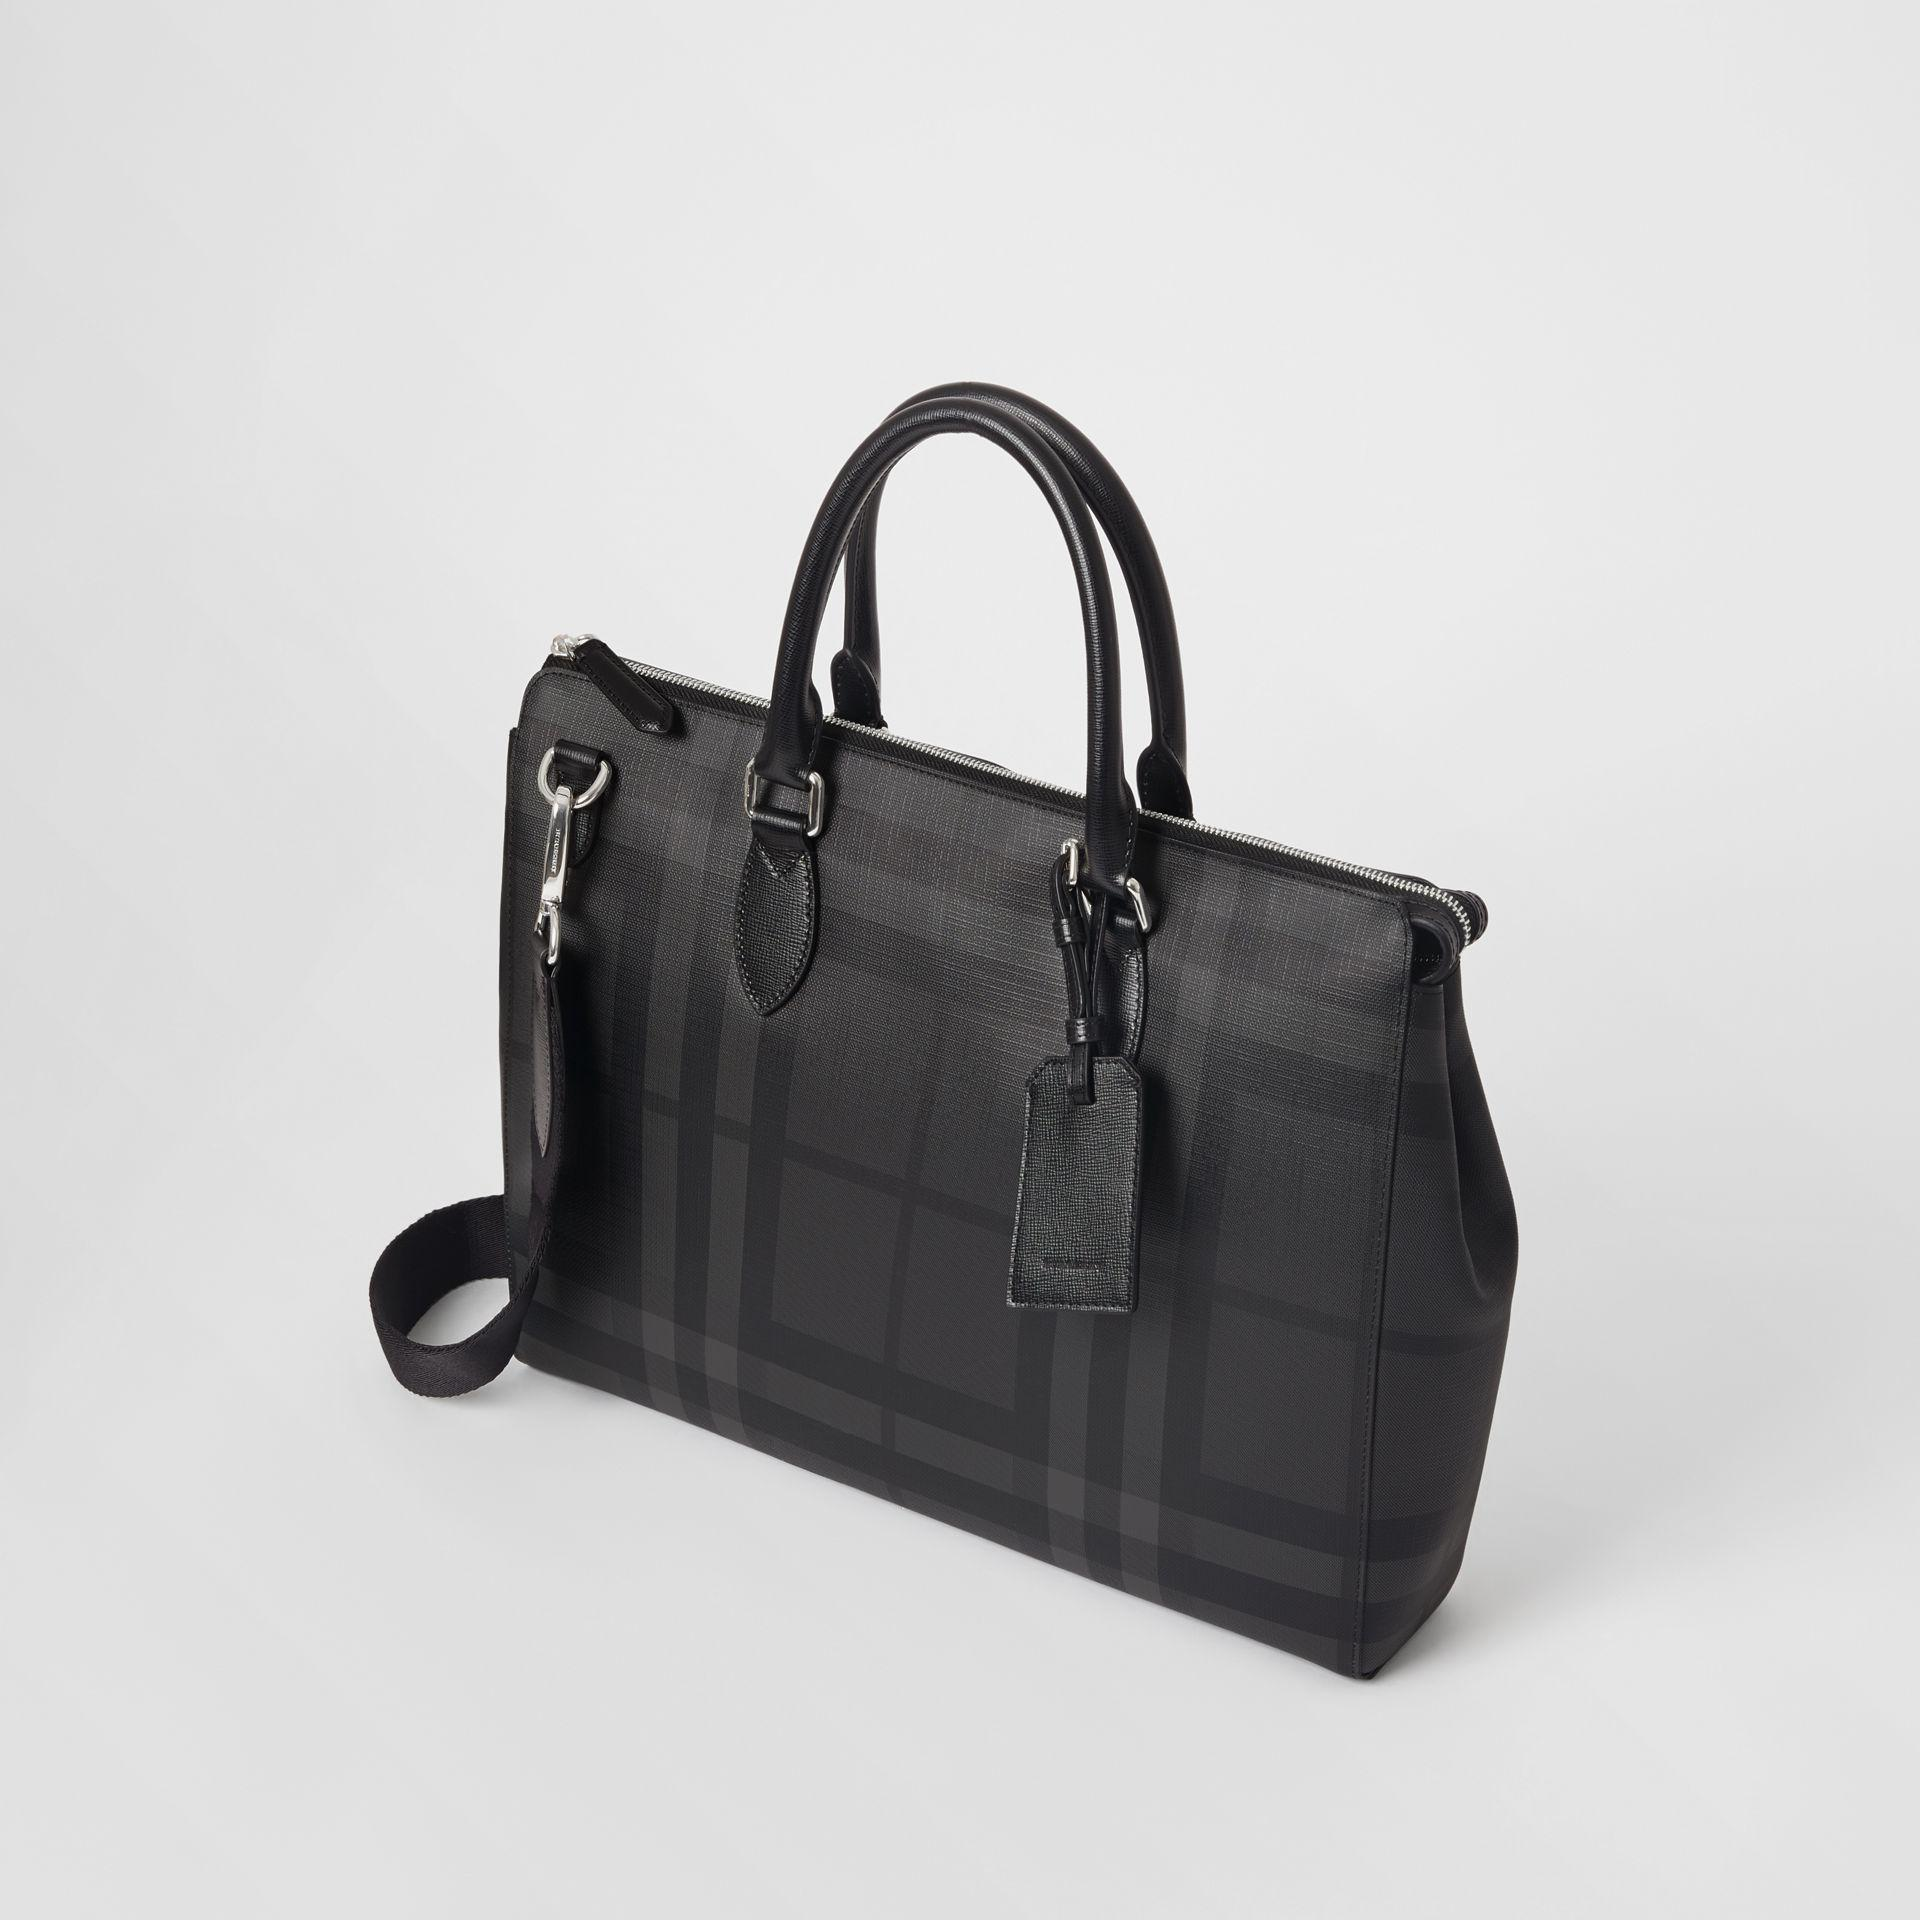 Burberry Large London Check Briefcase in Black for Men - Lyst 57ec28dbf3a24